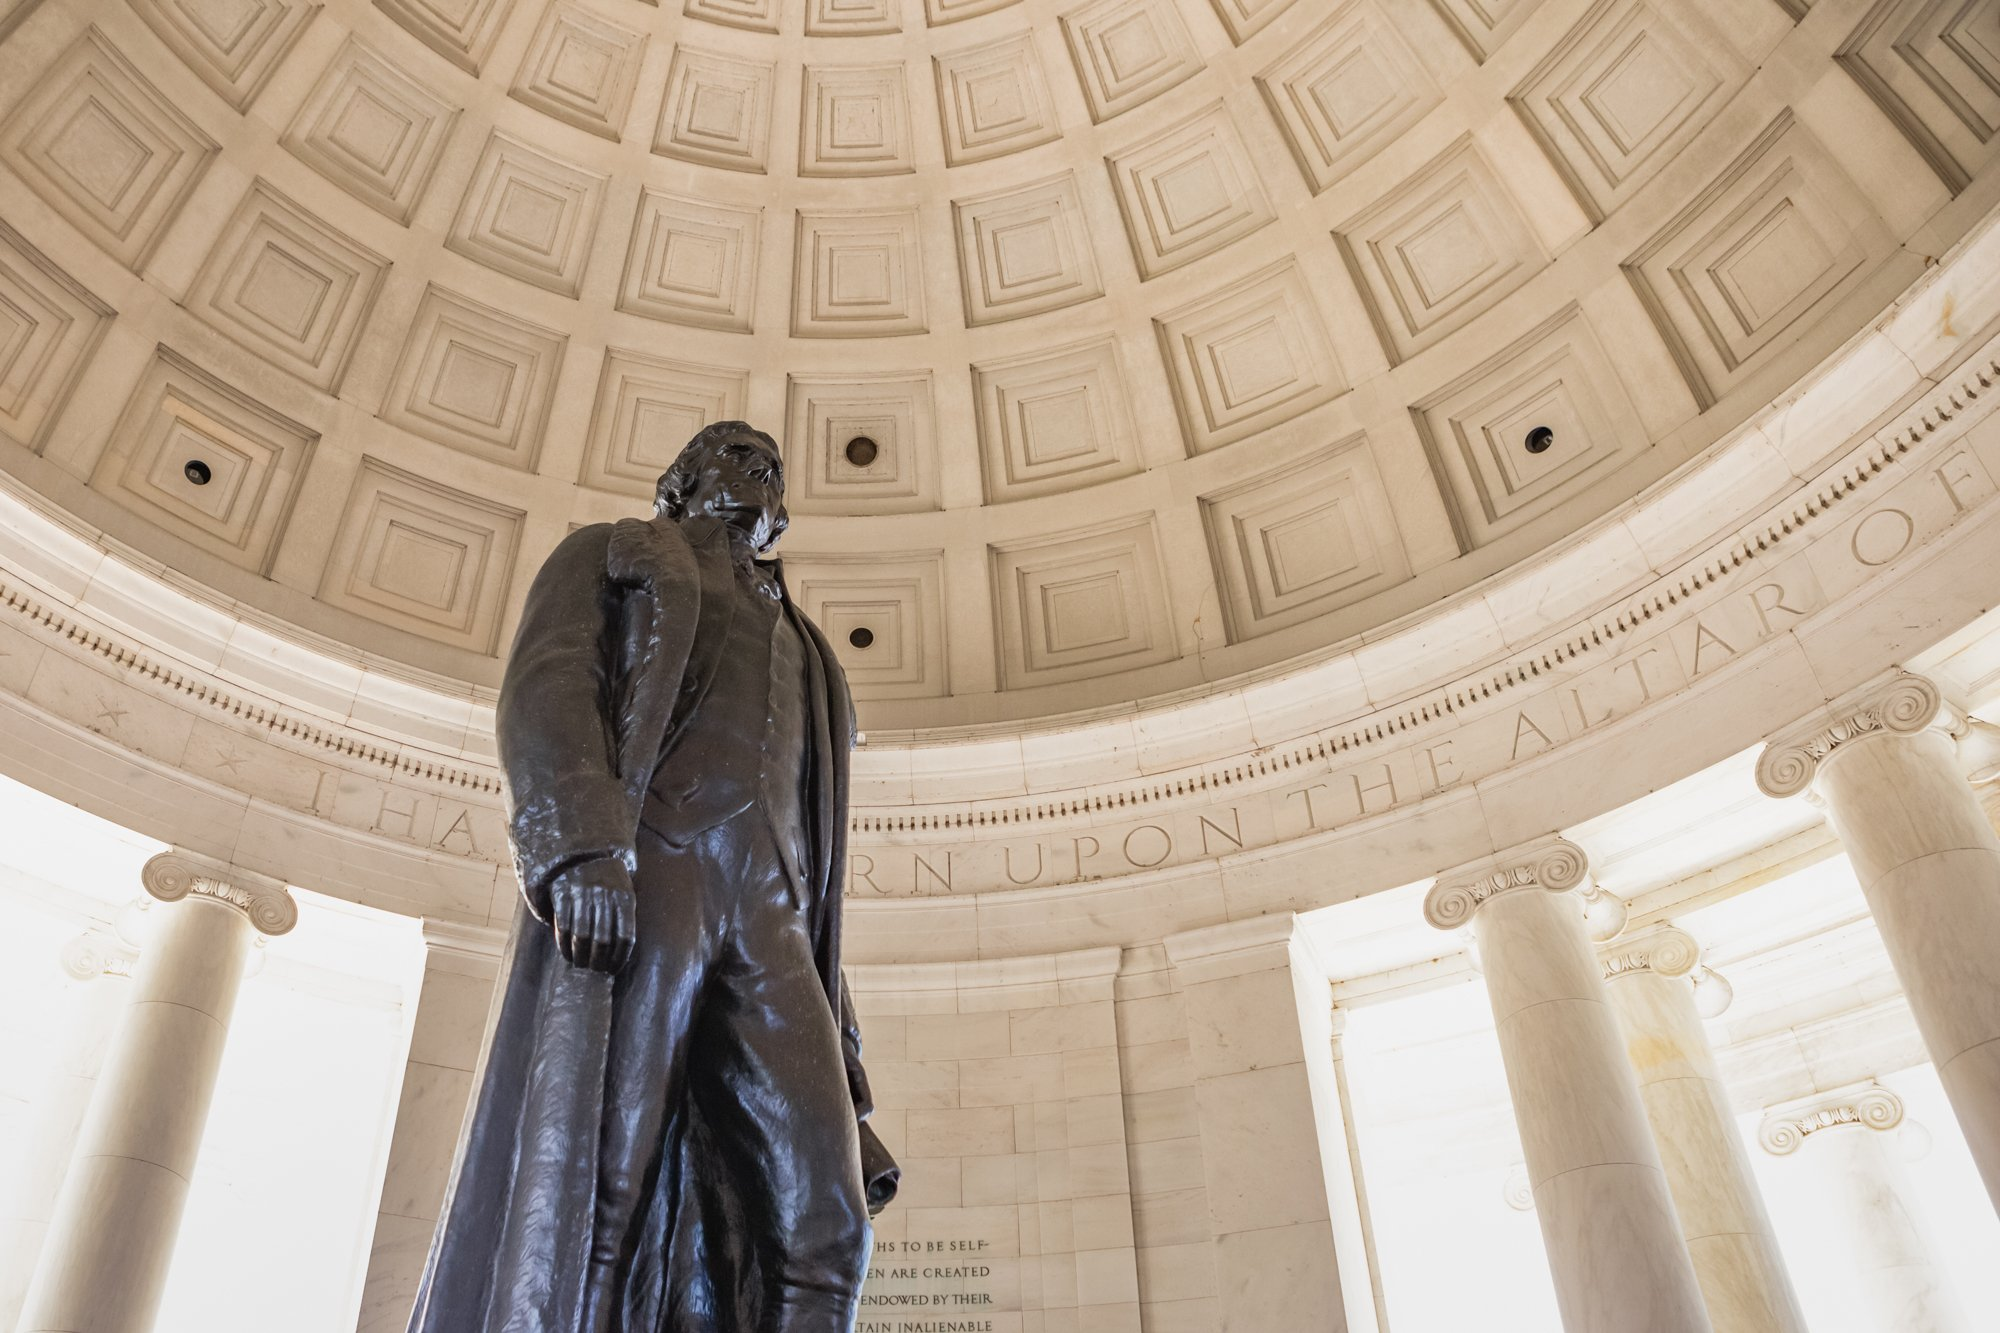 Statue of President Thomas Jefferson, author of the Declaration of Independence, inside the Jefferson Memorial on the Tidal Basin in Washington,DC